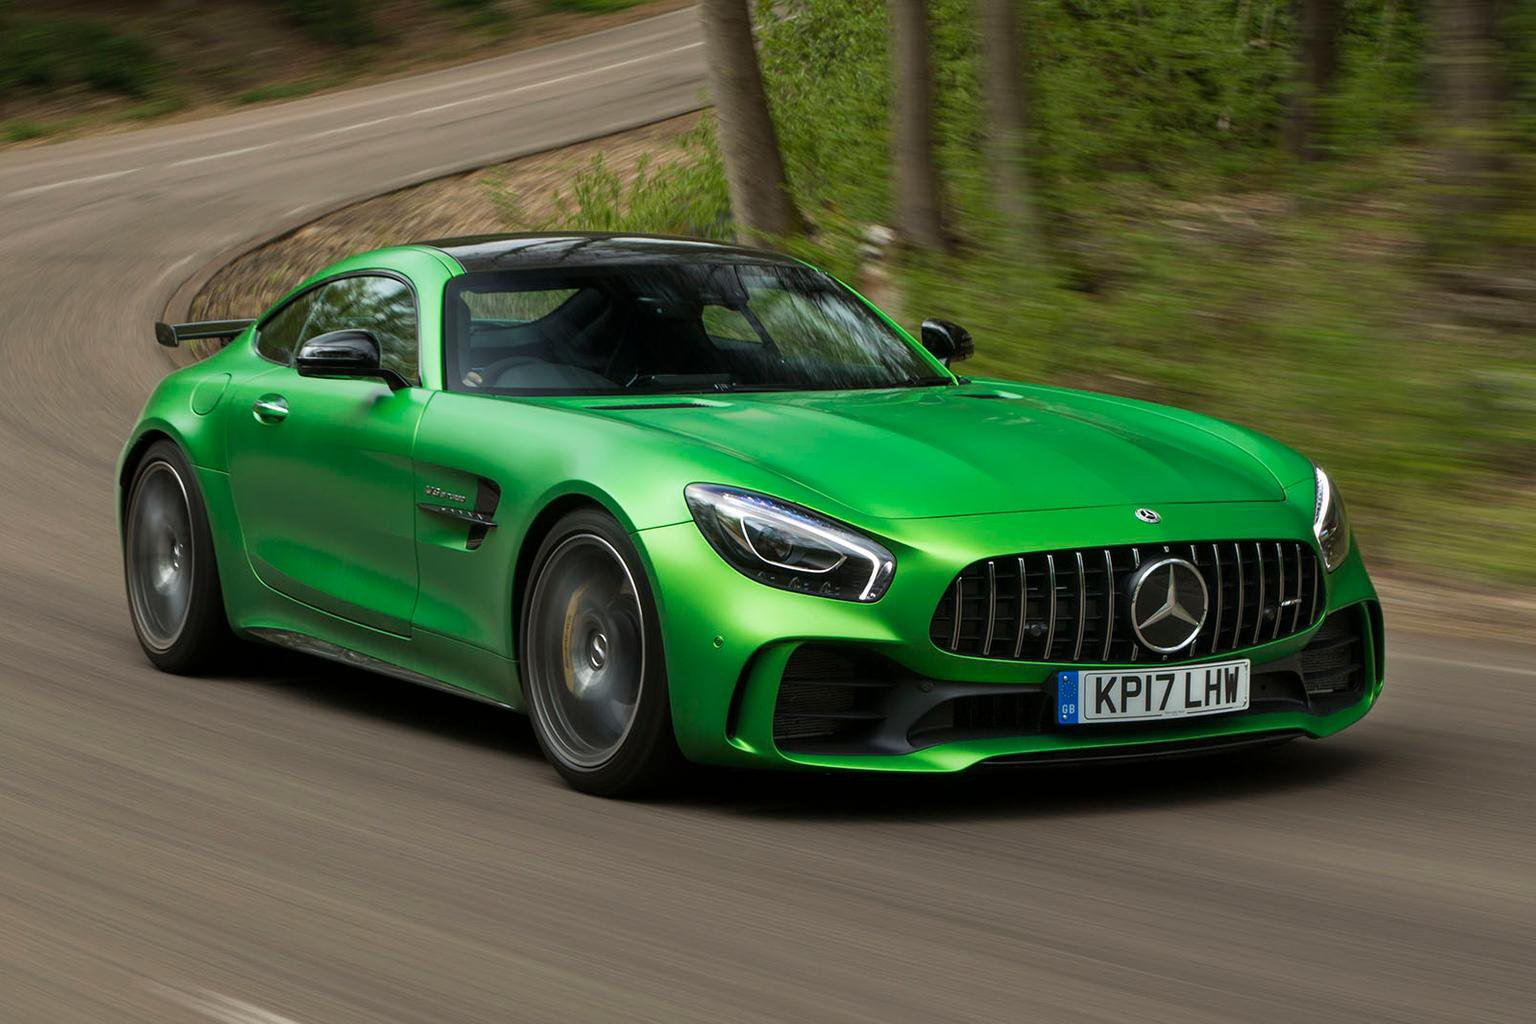 Mercedes-AMG GT R 2017 review